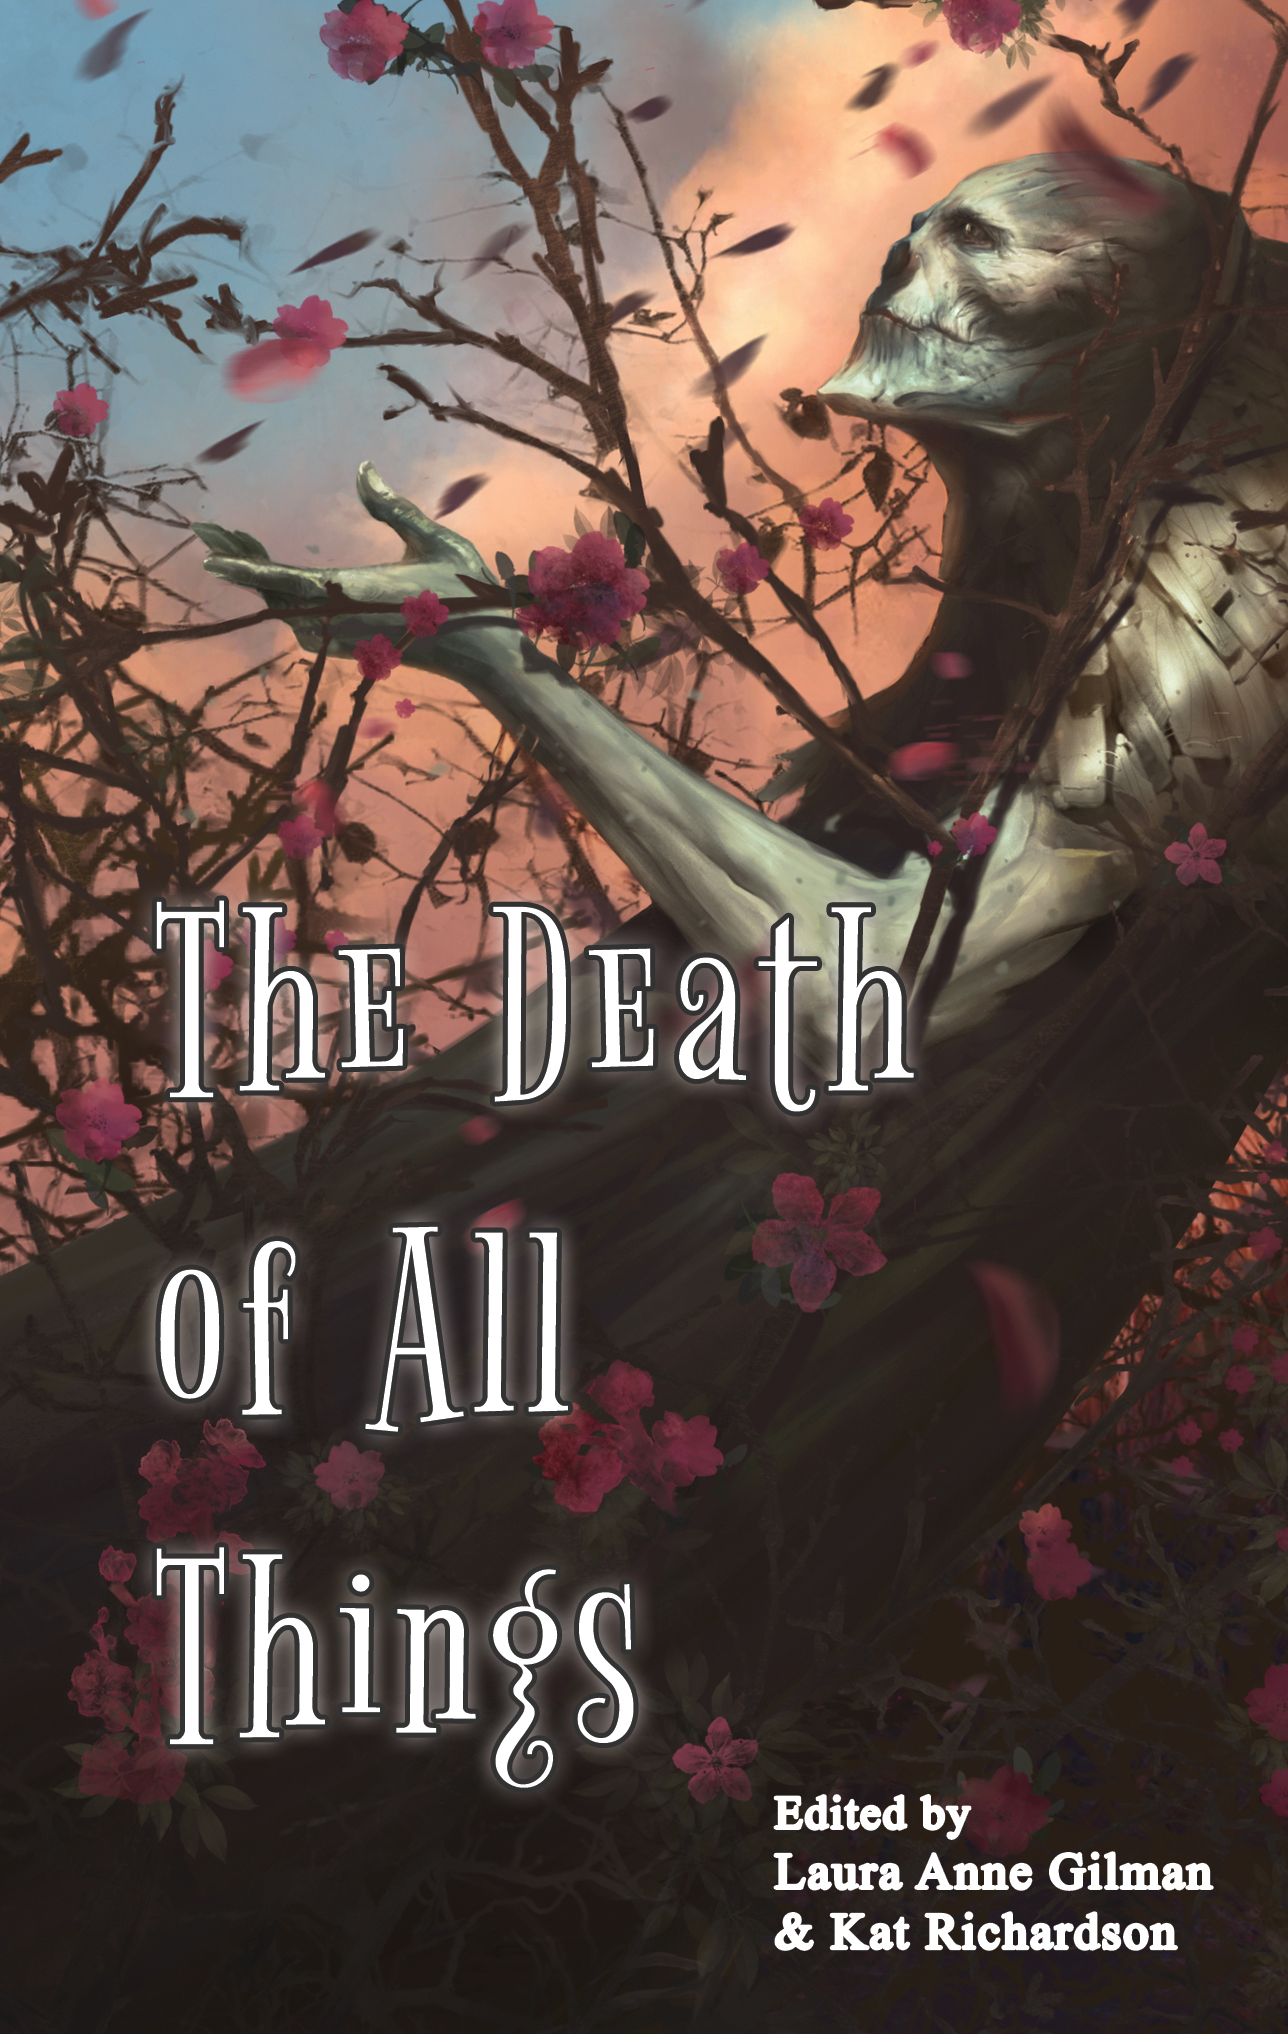 The Death of All Things, 2017